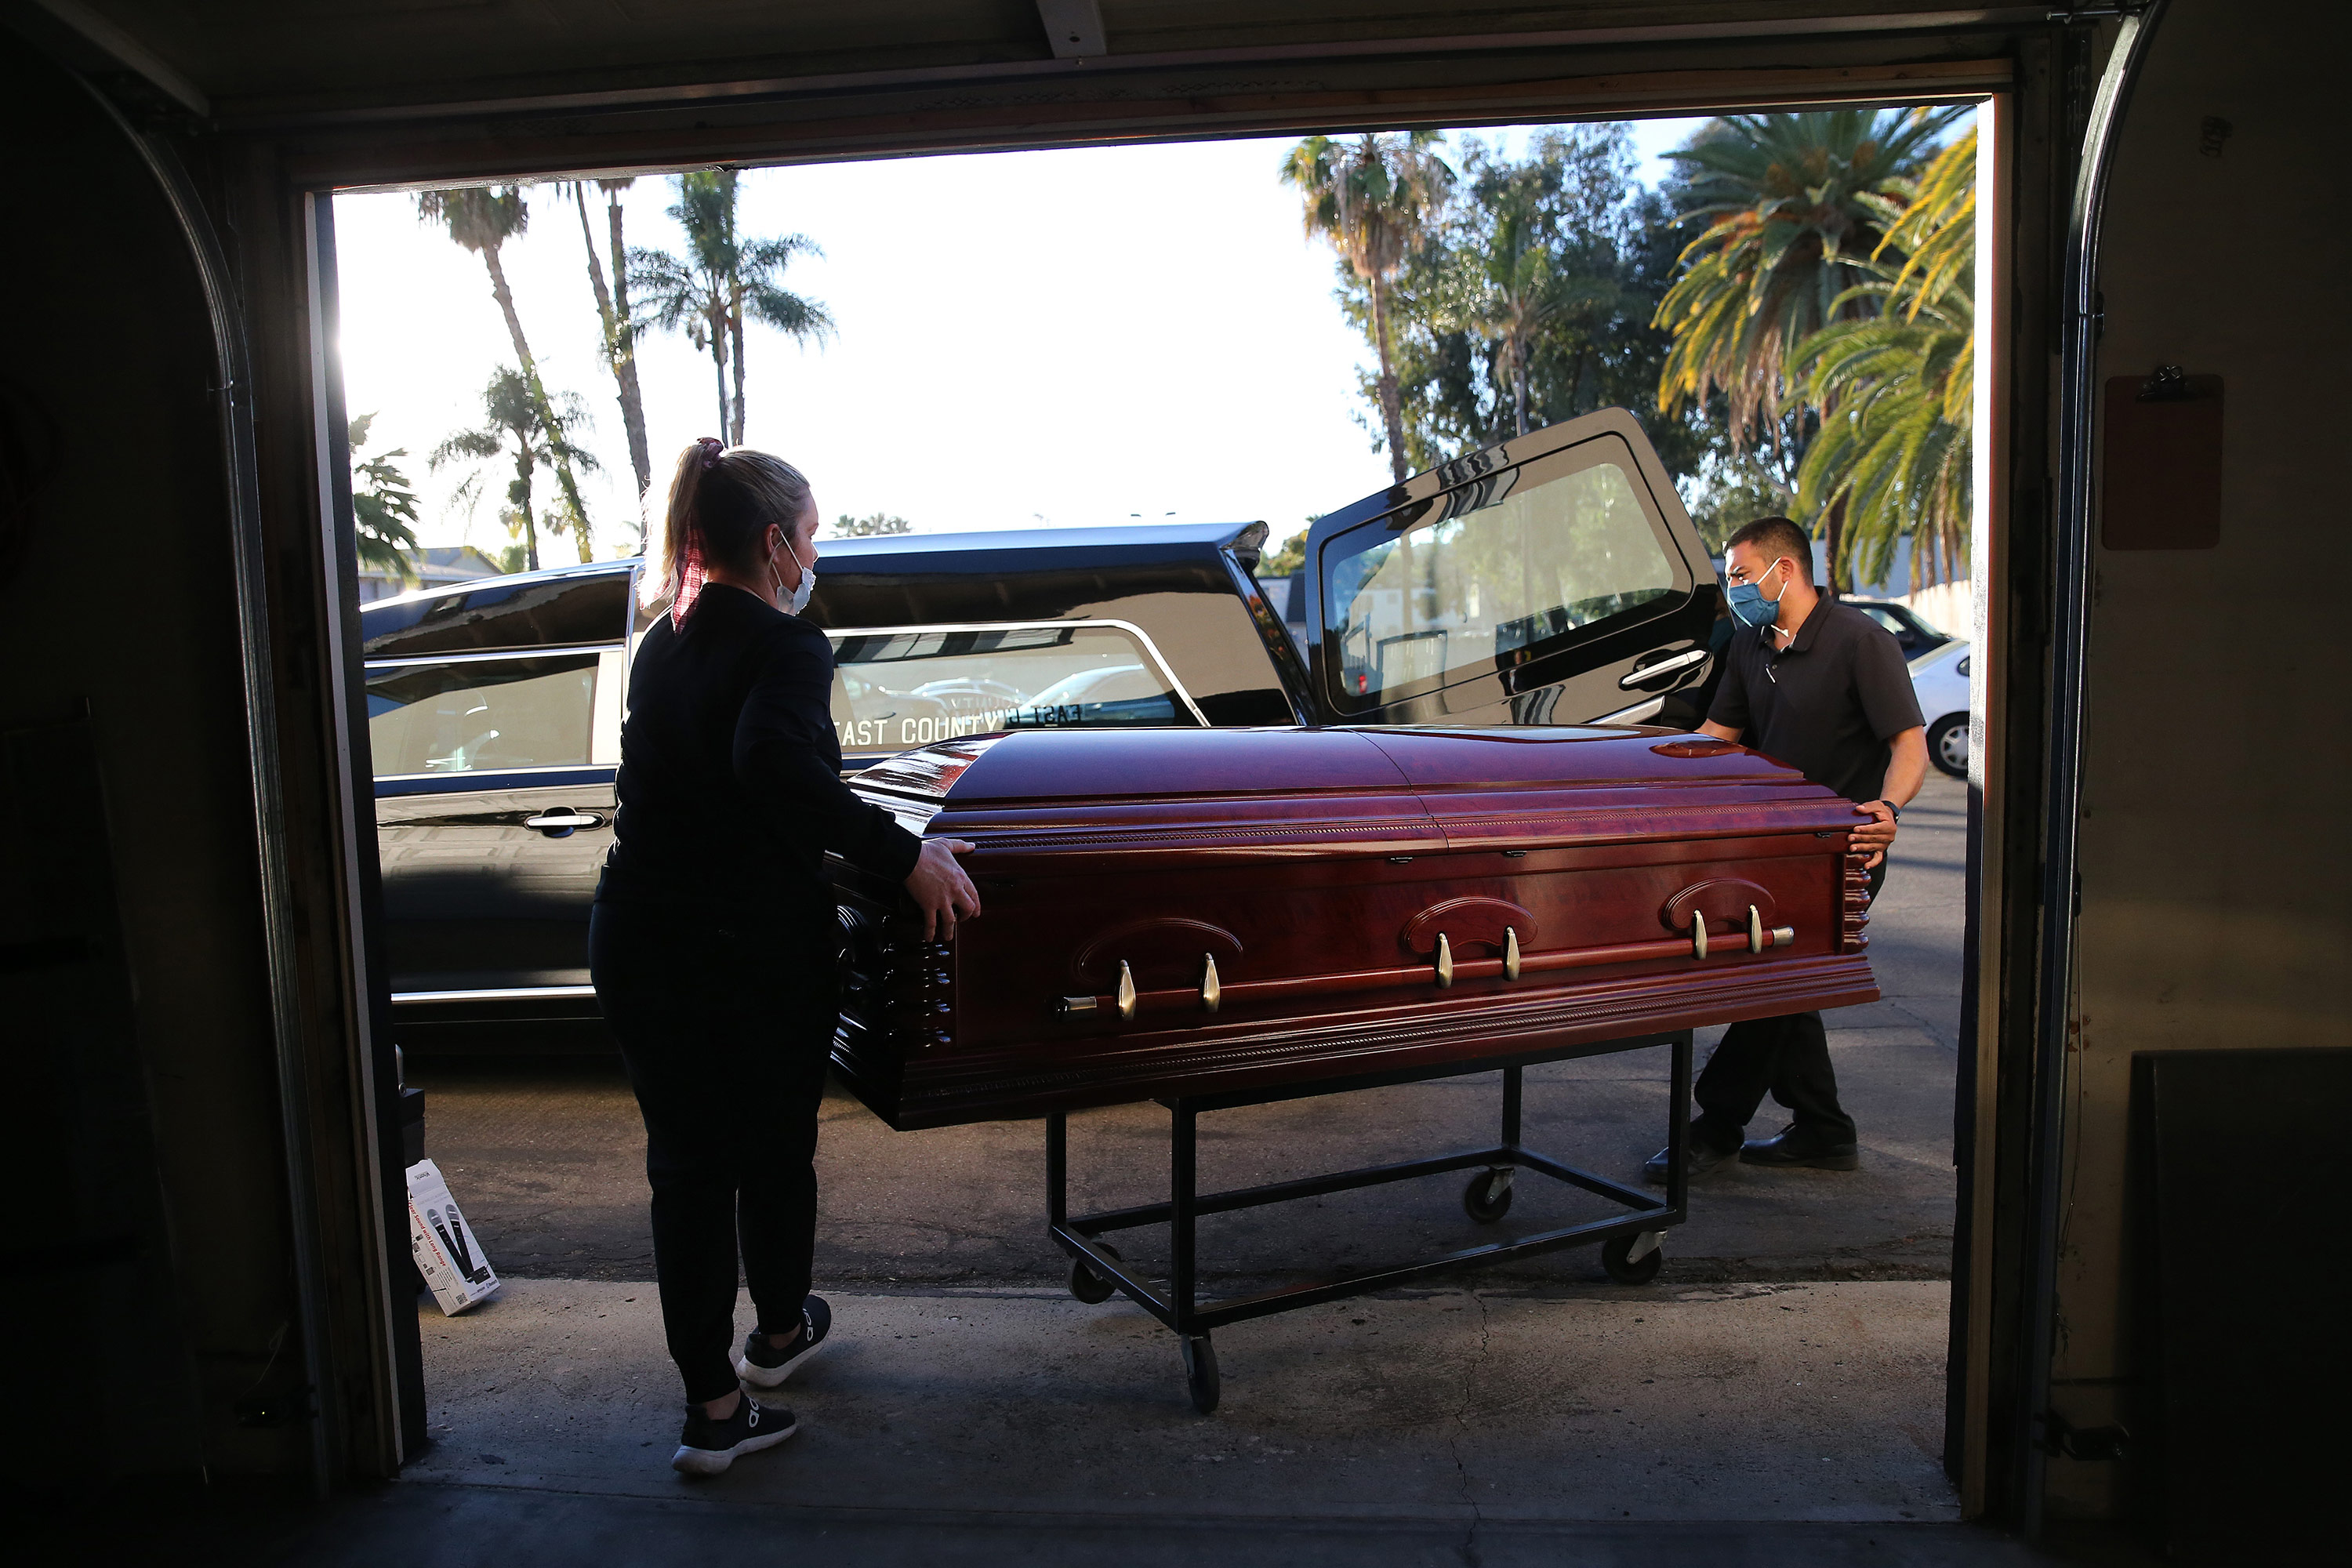 Funeral director Kristy Oliver and funeral attendant Sam Deras load the casket of a person who died after contracting Covid-19 into a hearse at East County Mortuary on January 15 in El Cajon, California